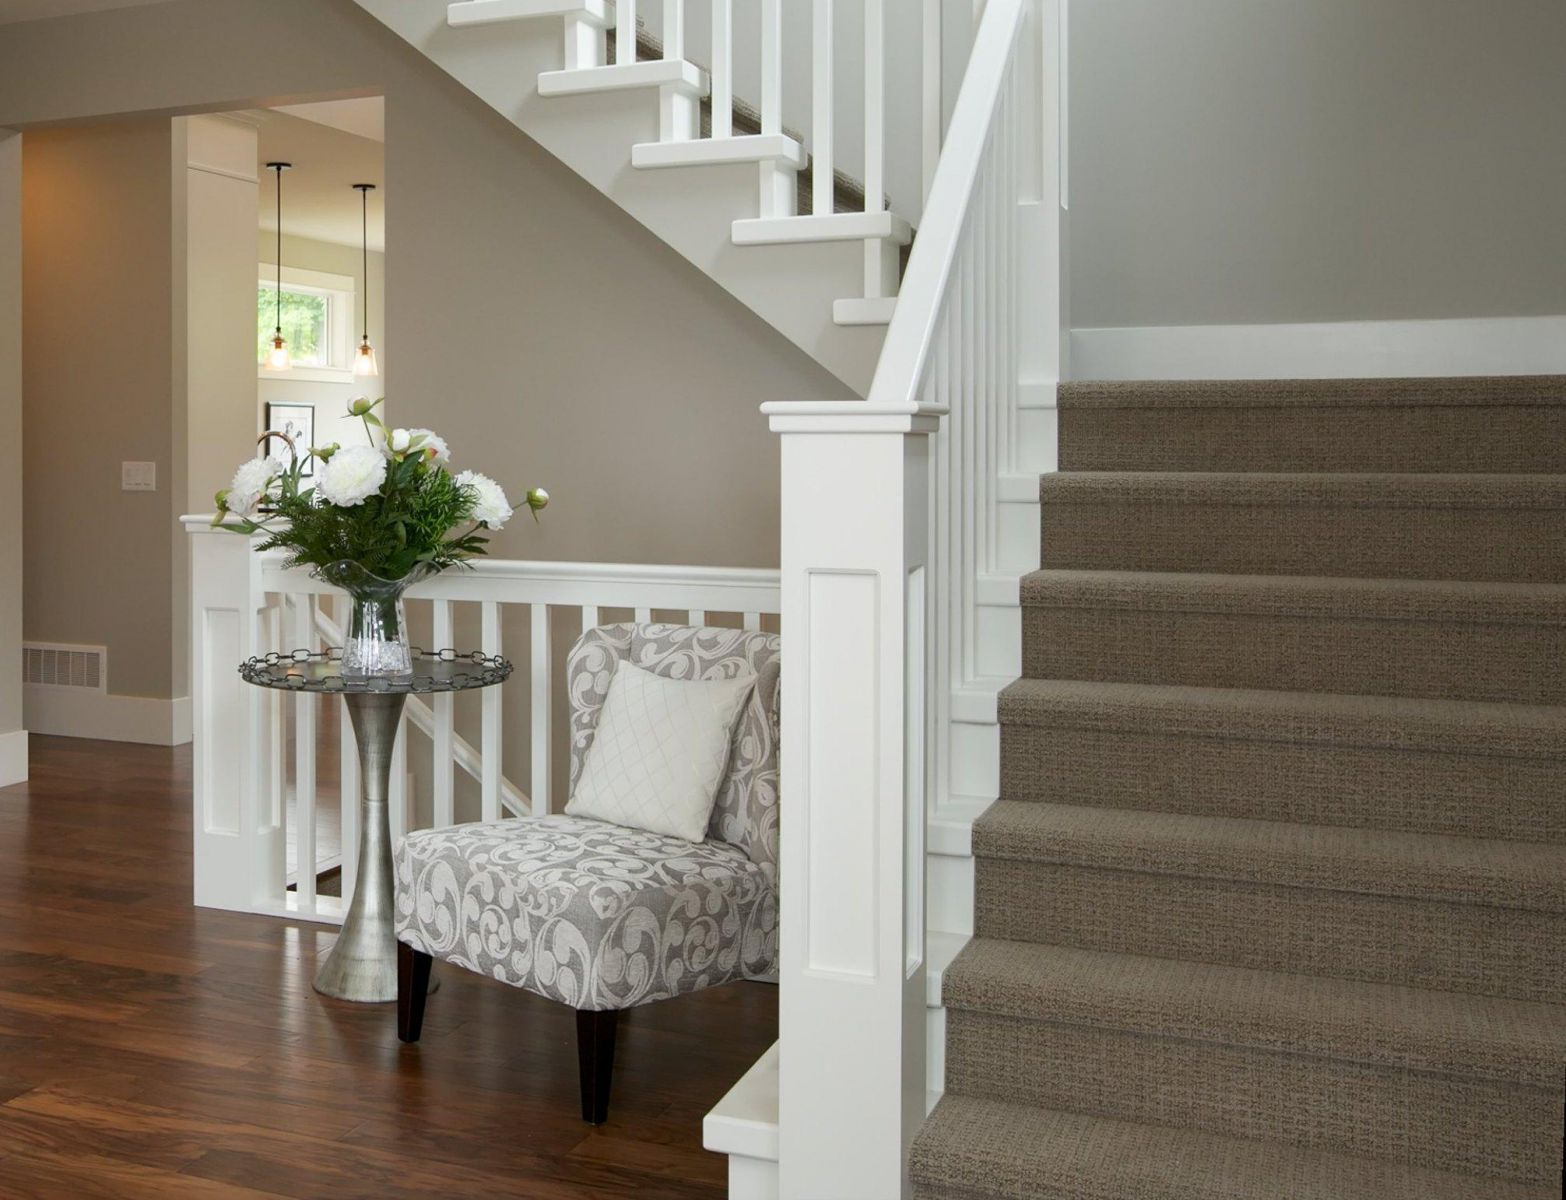 Foyer For Home : Styling tips for your foyer